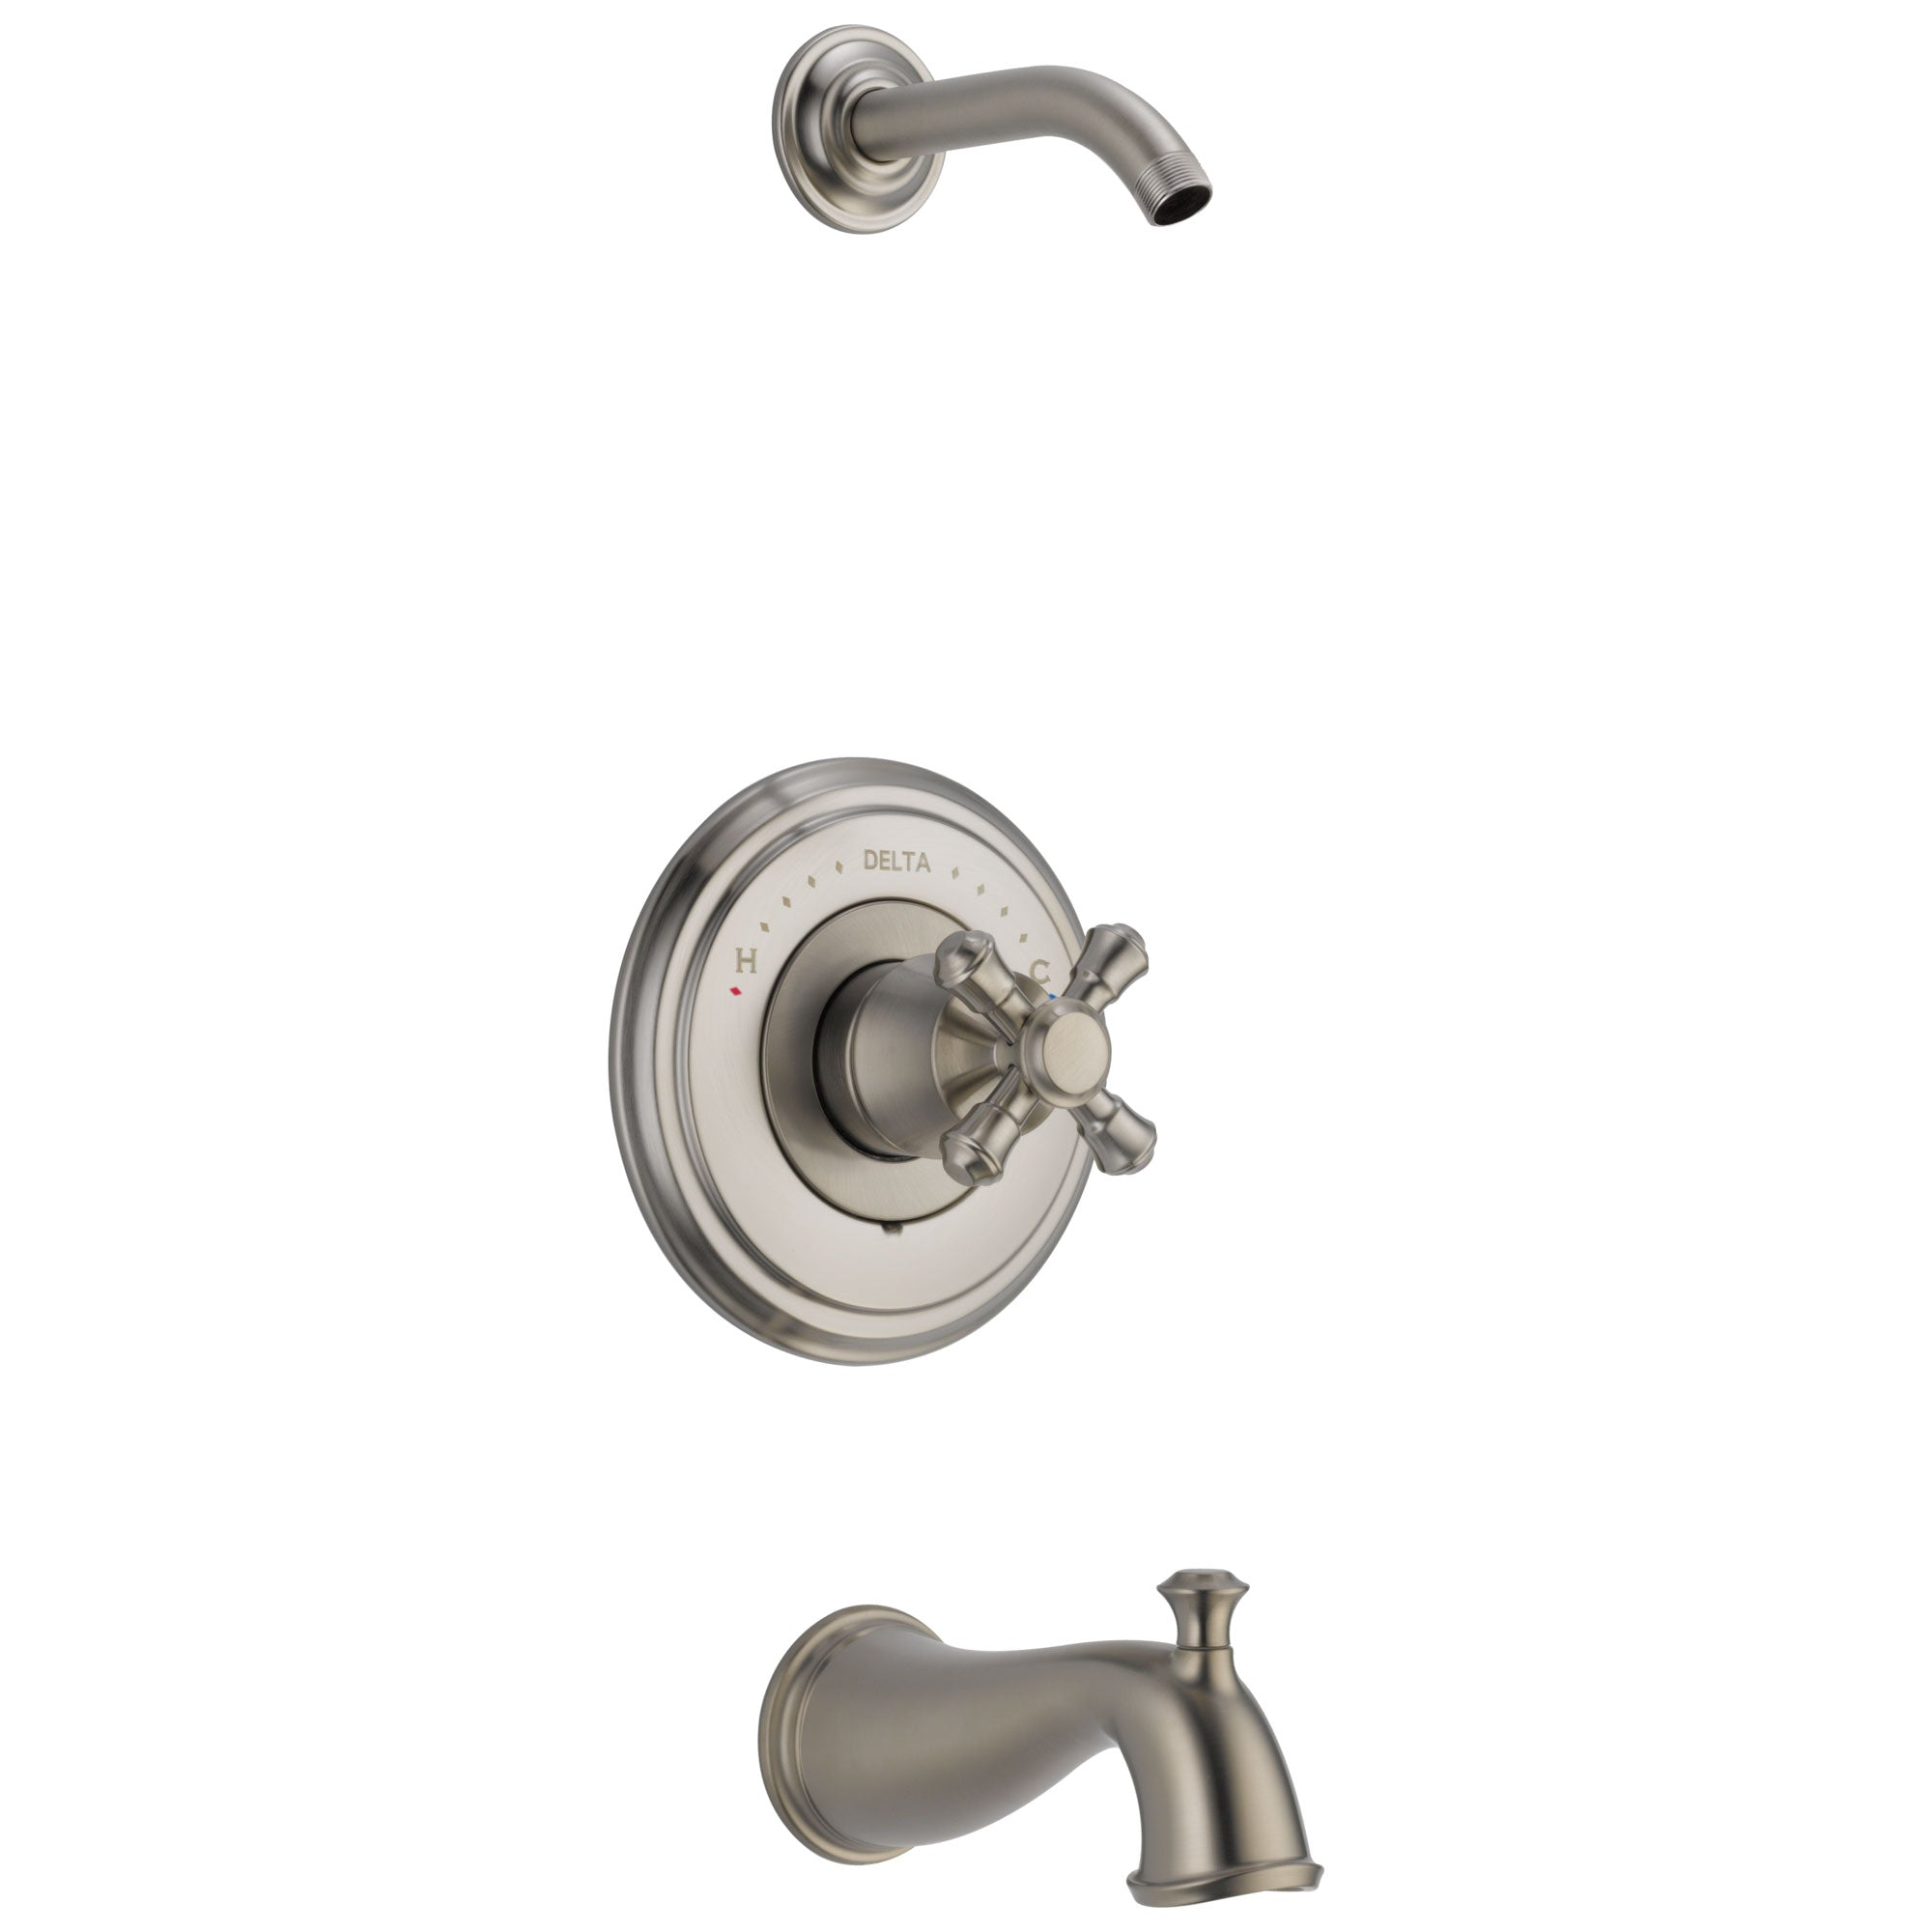 Delta Cassidy Collection Stainless Steel Finish Tub and Shower Combination - Less Showerhead INCLUDES Single Cross Handle and Rough-in Valve without Stops D1814V